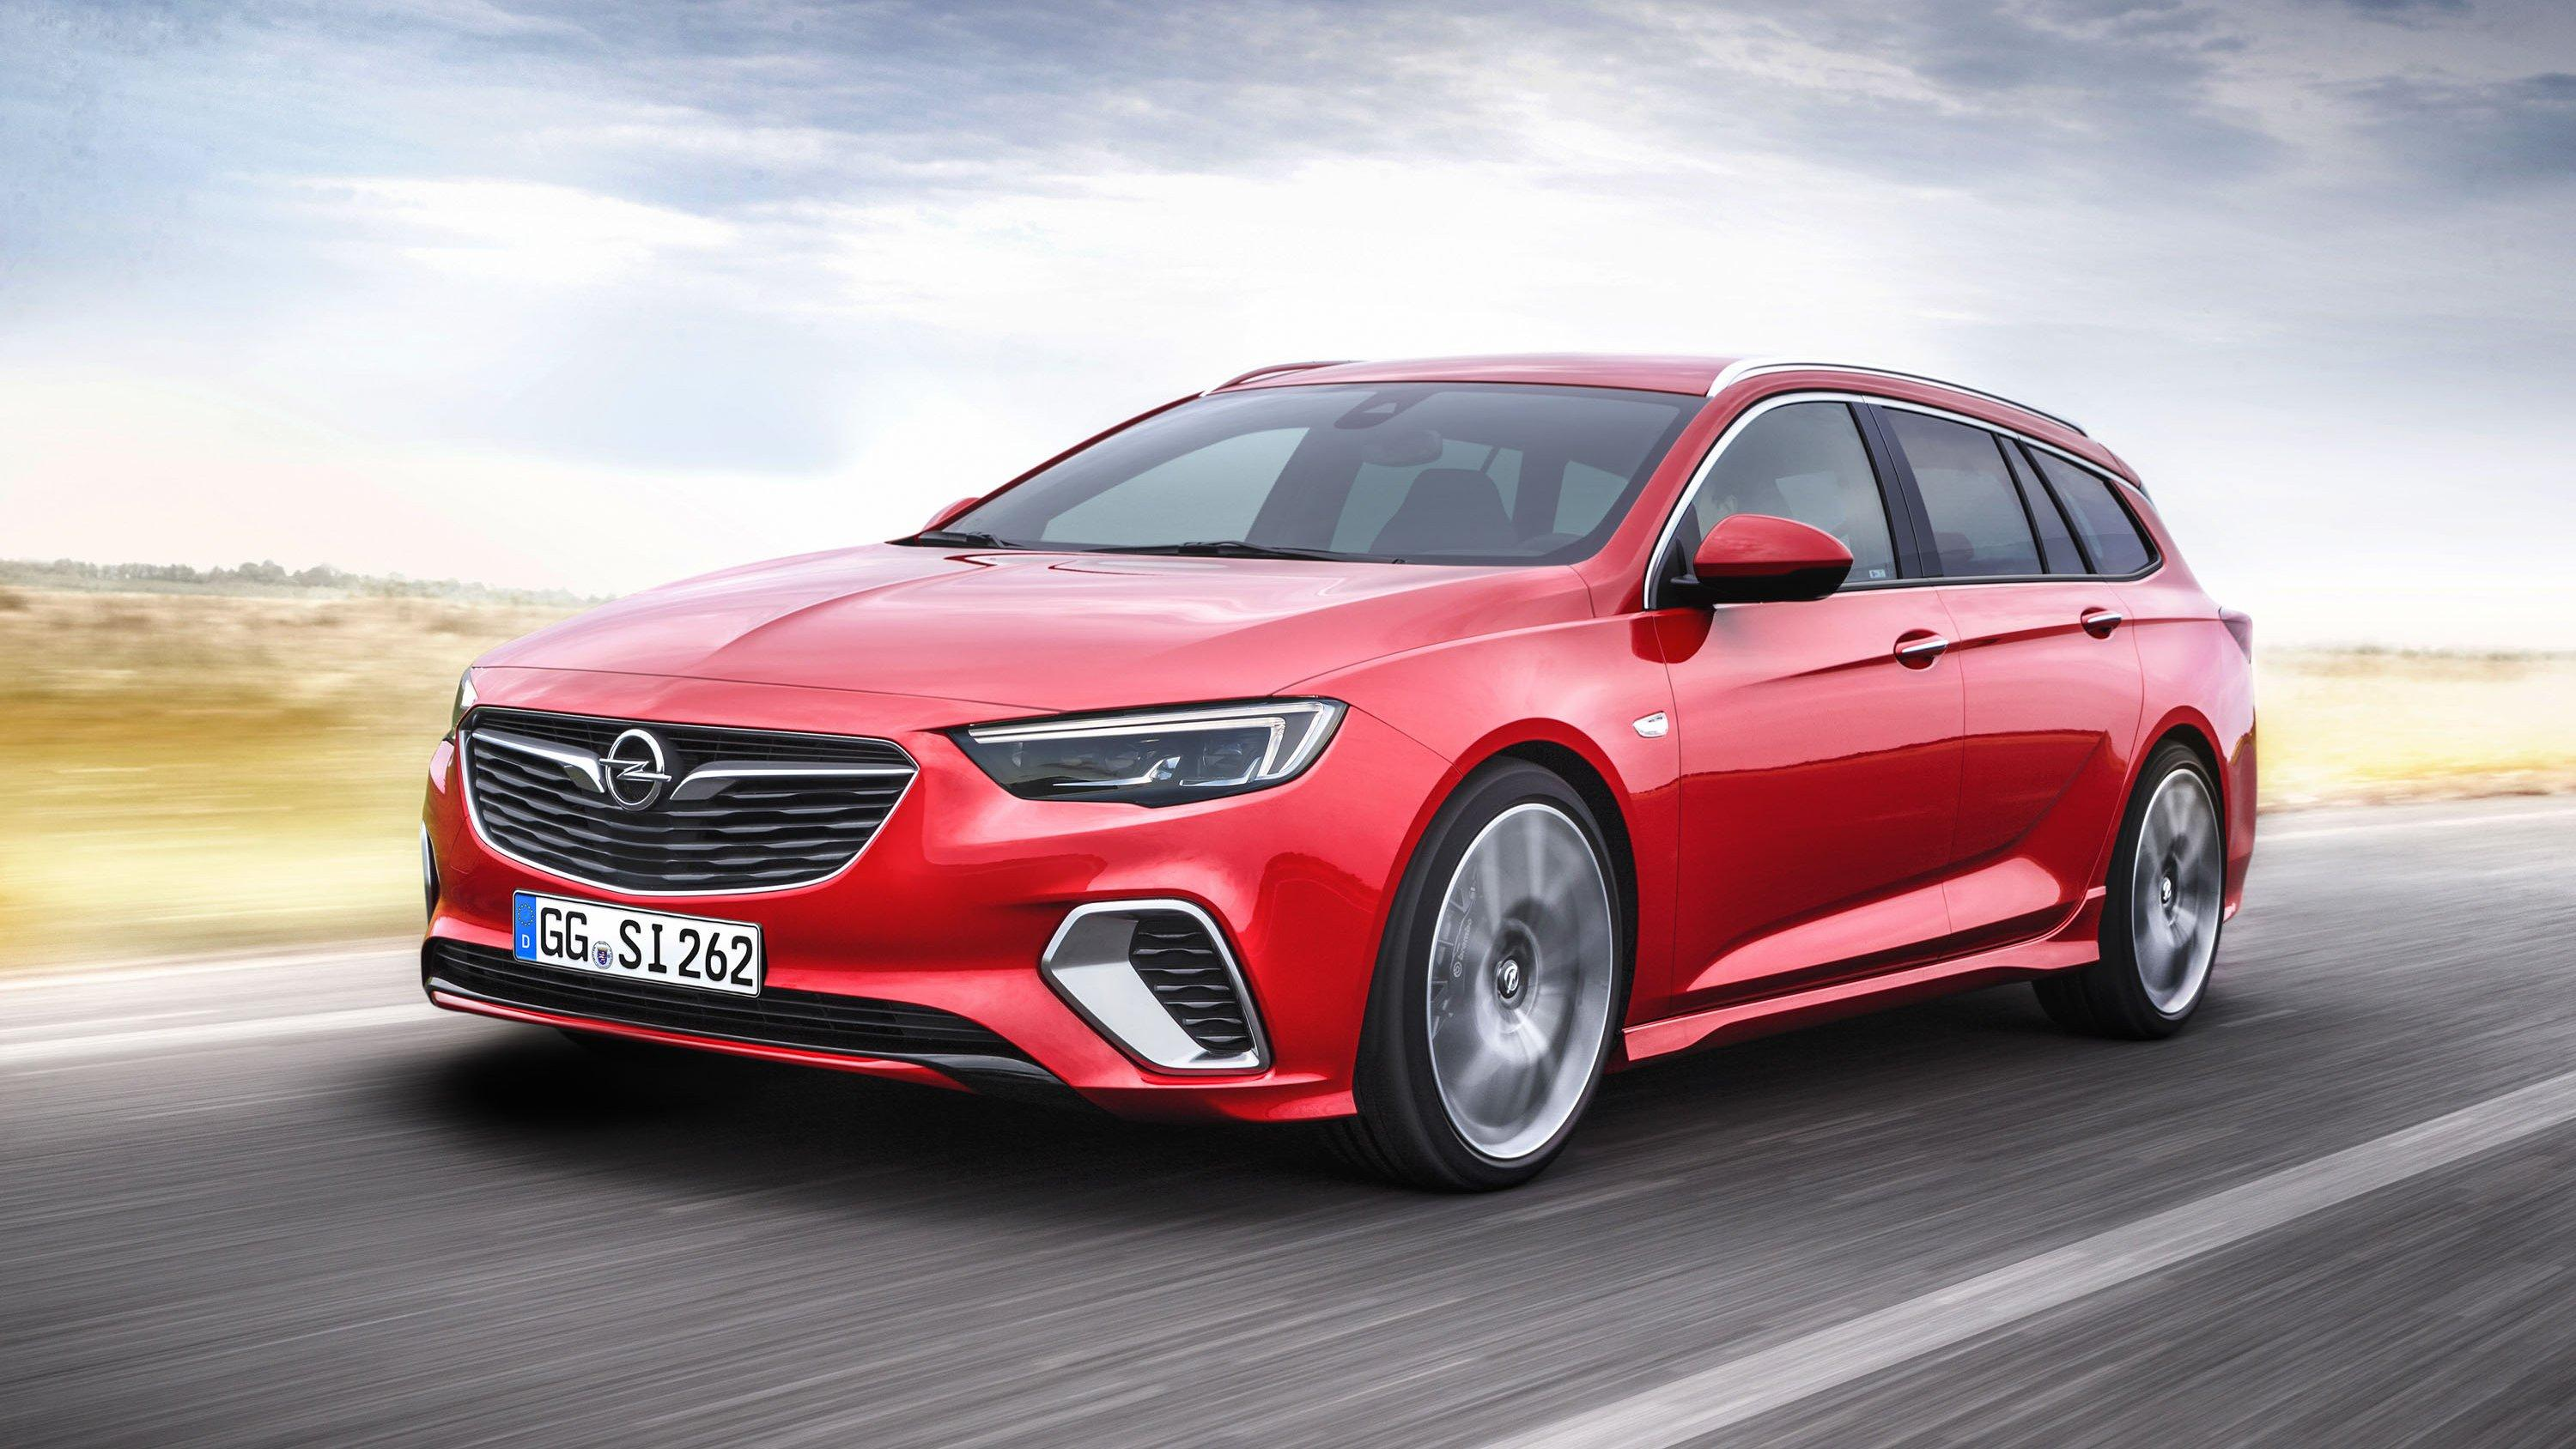 2018 Opel Insignia GSi Sports Tourer Pictures, Photos, Wallpapers